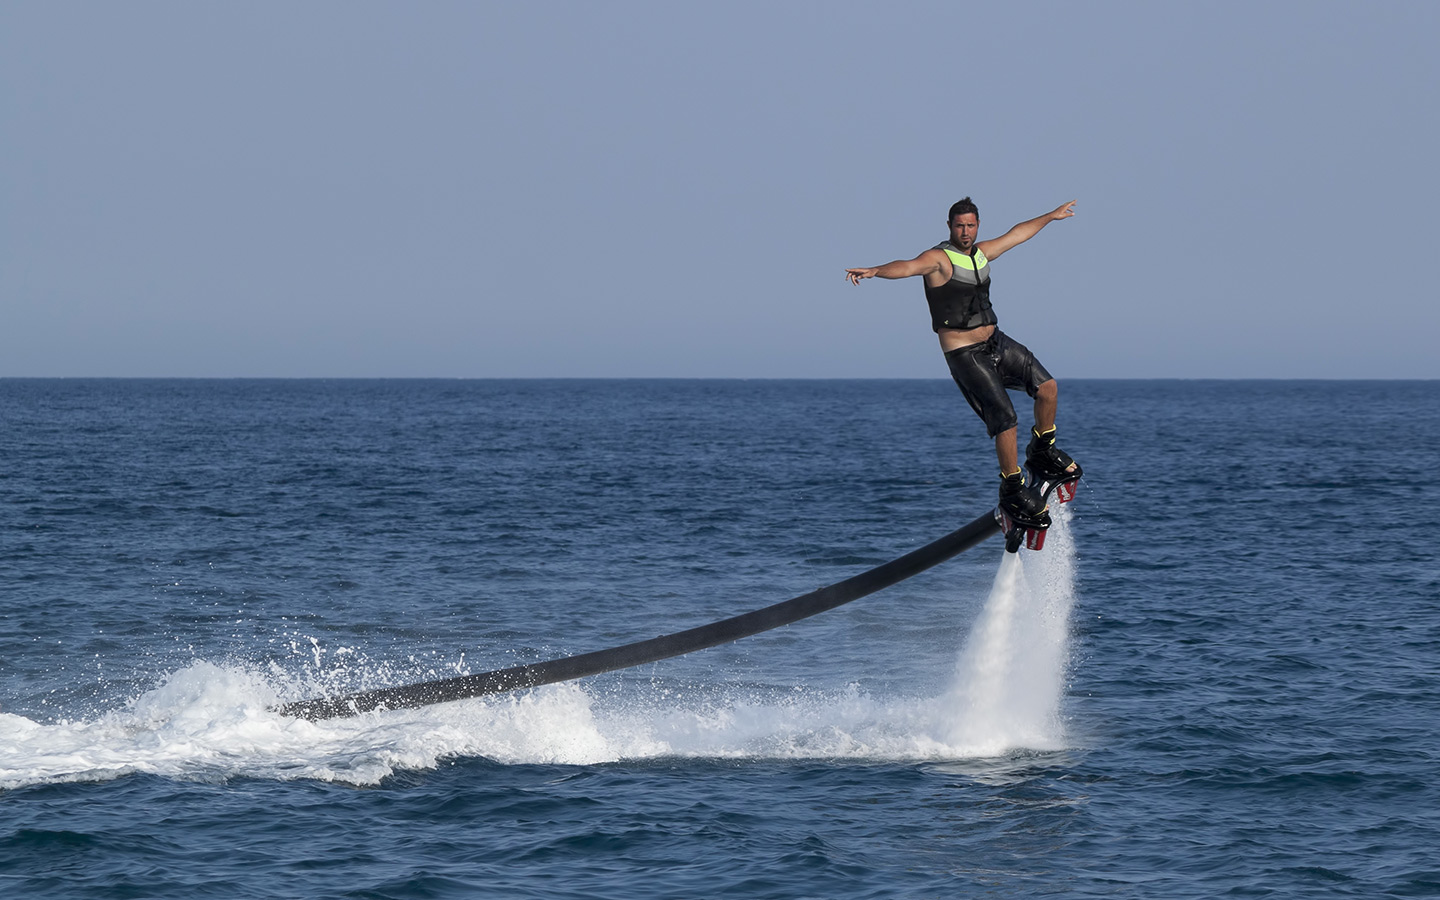 Flyboarding is one of the watersports that you can enjoy in Dubai Marina